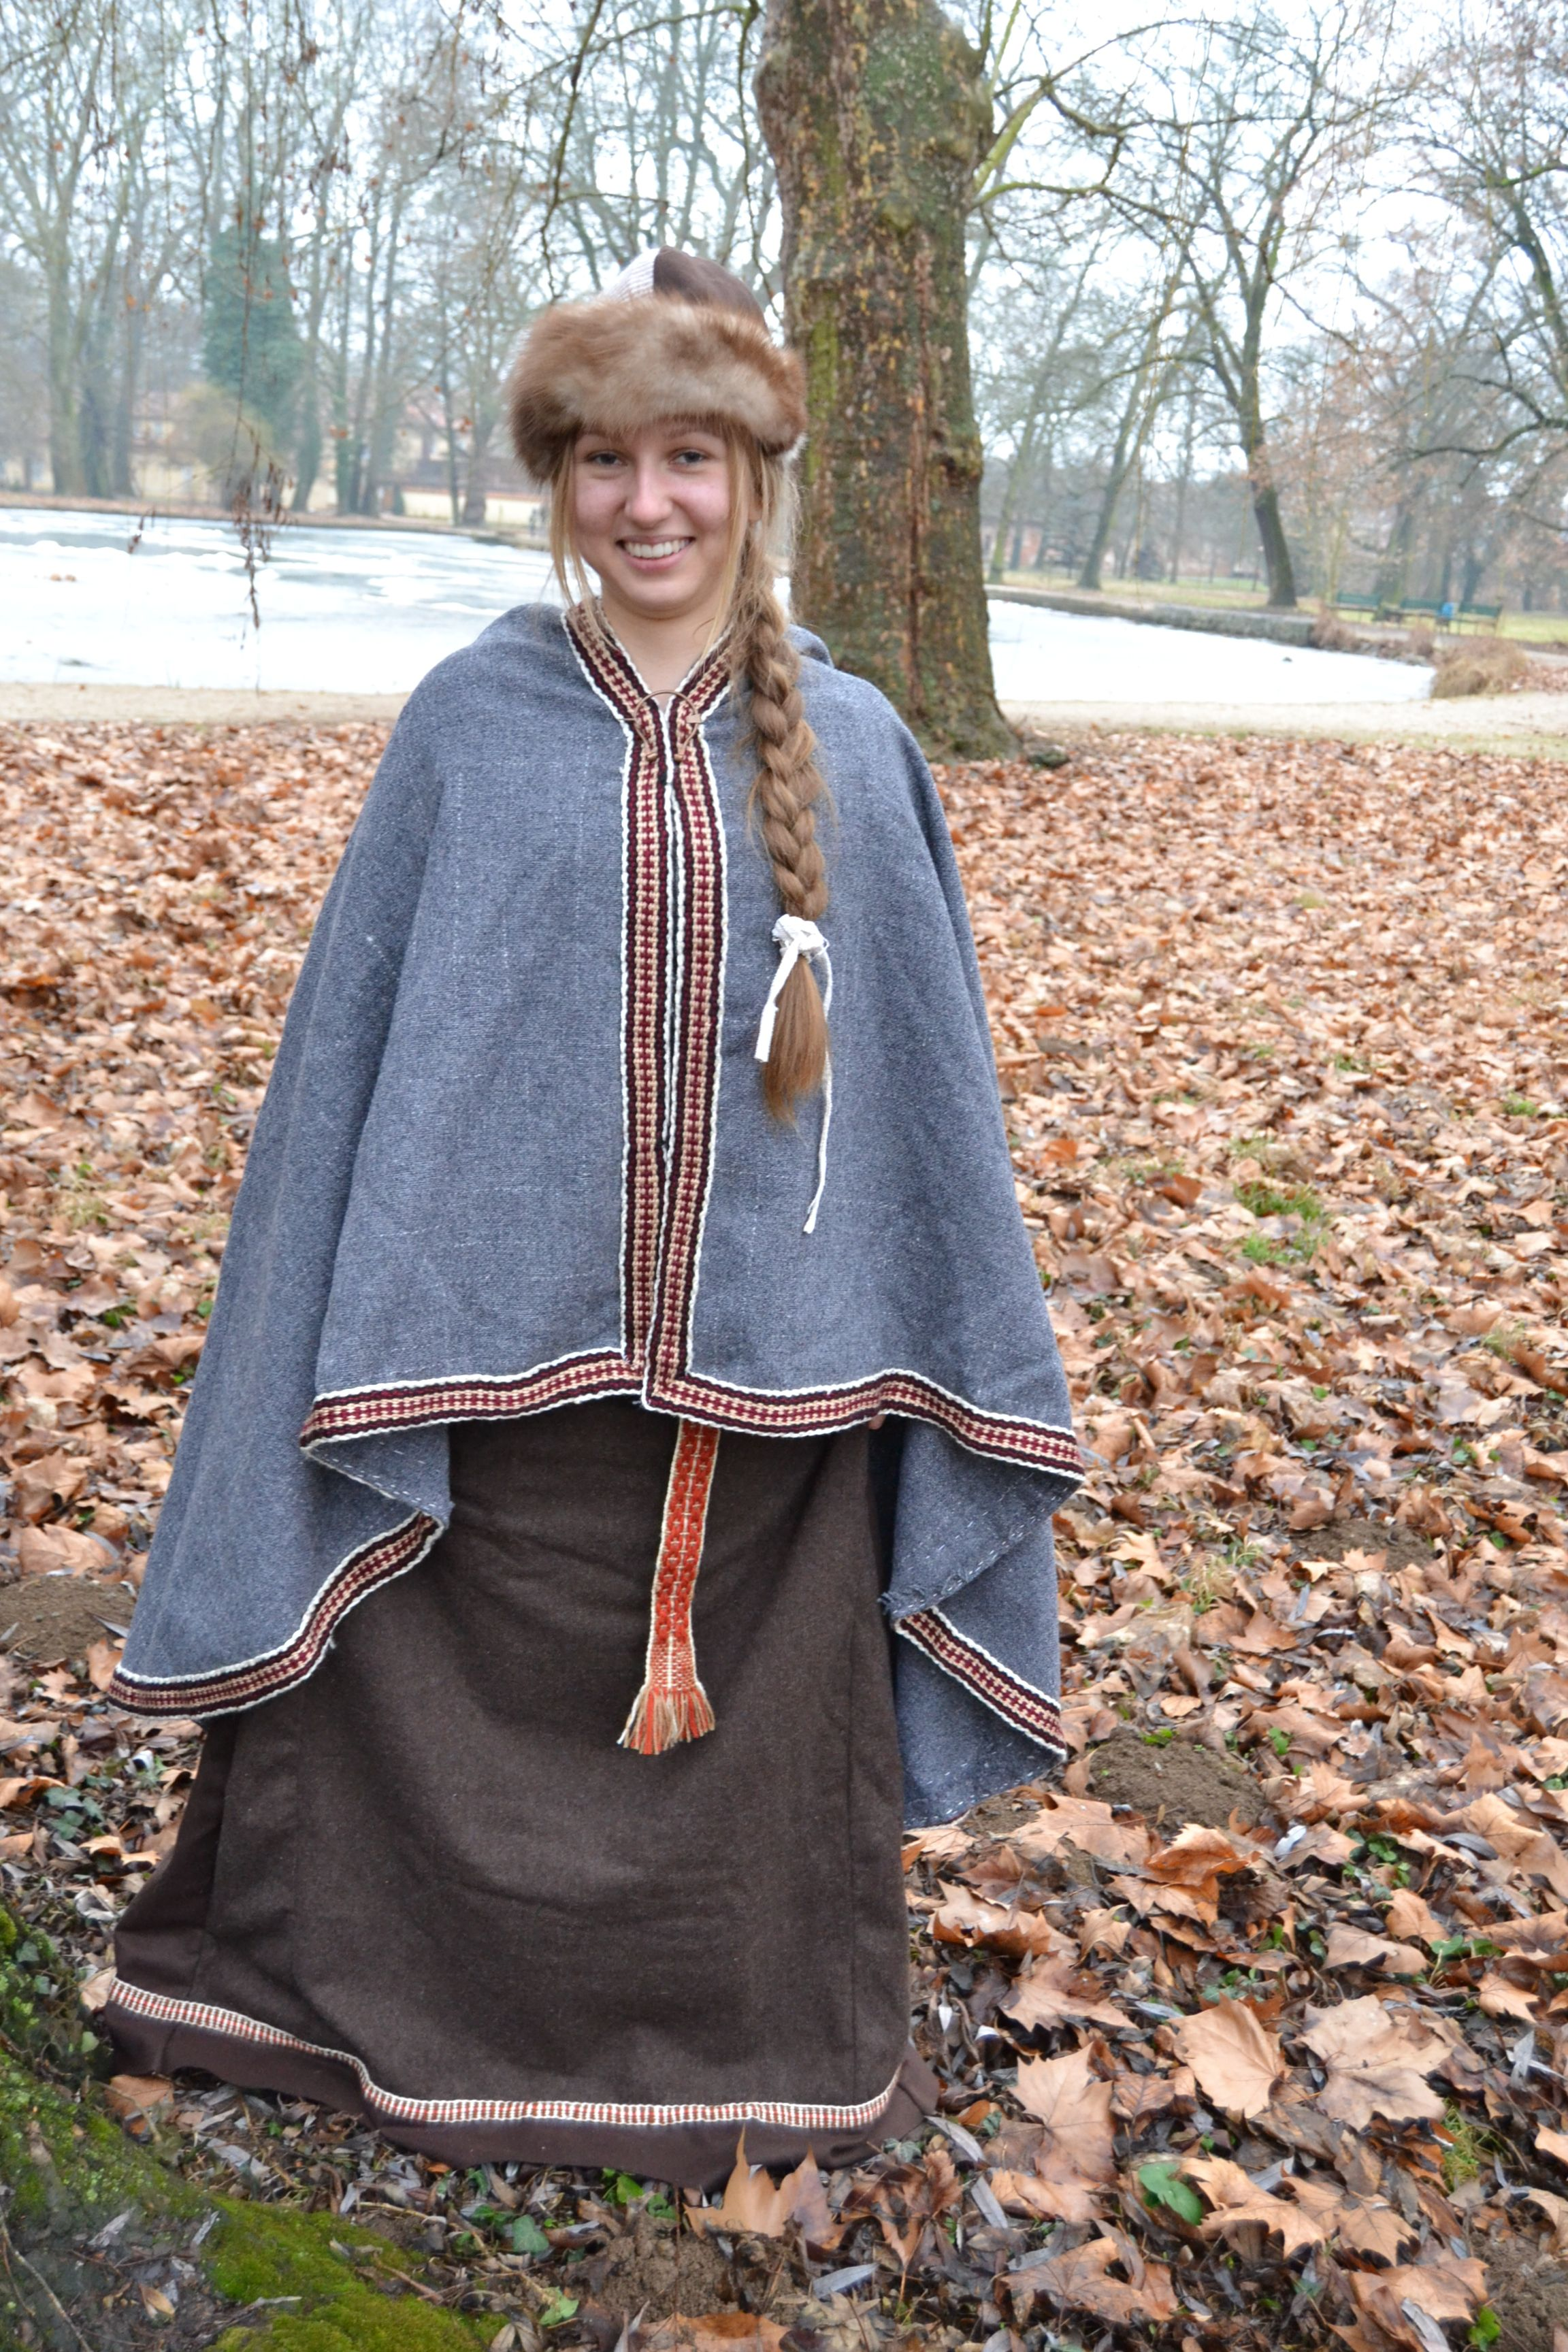 Early Medieval Cloak 10 12 Century Early Medieval Viking Clothing Viking Clothing Medieval Costume Medieval Cloak